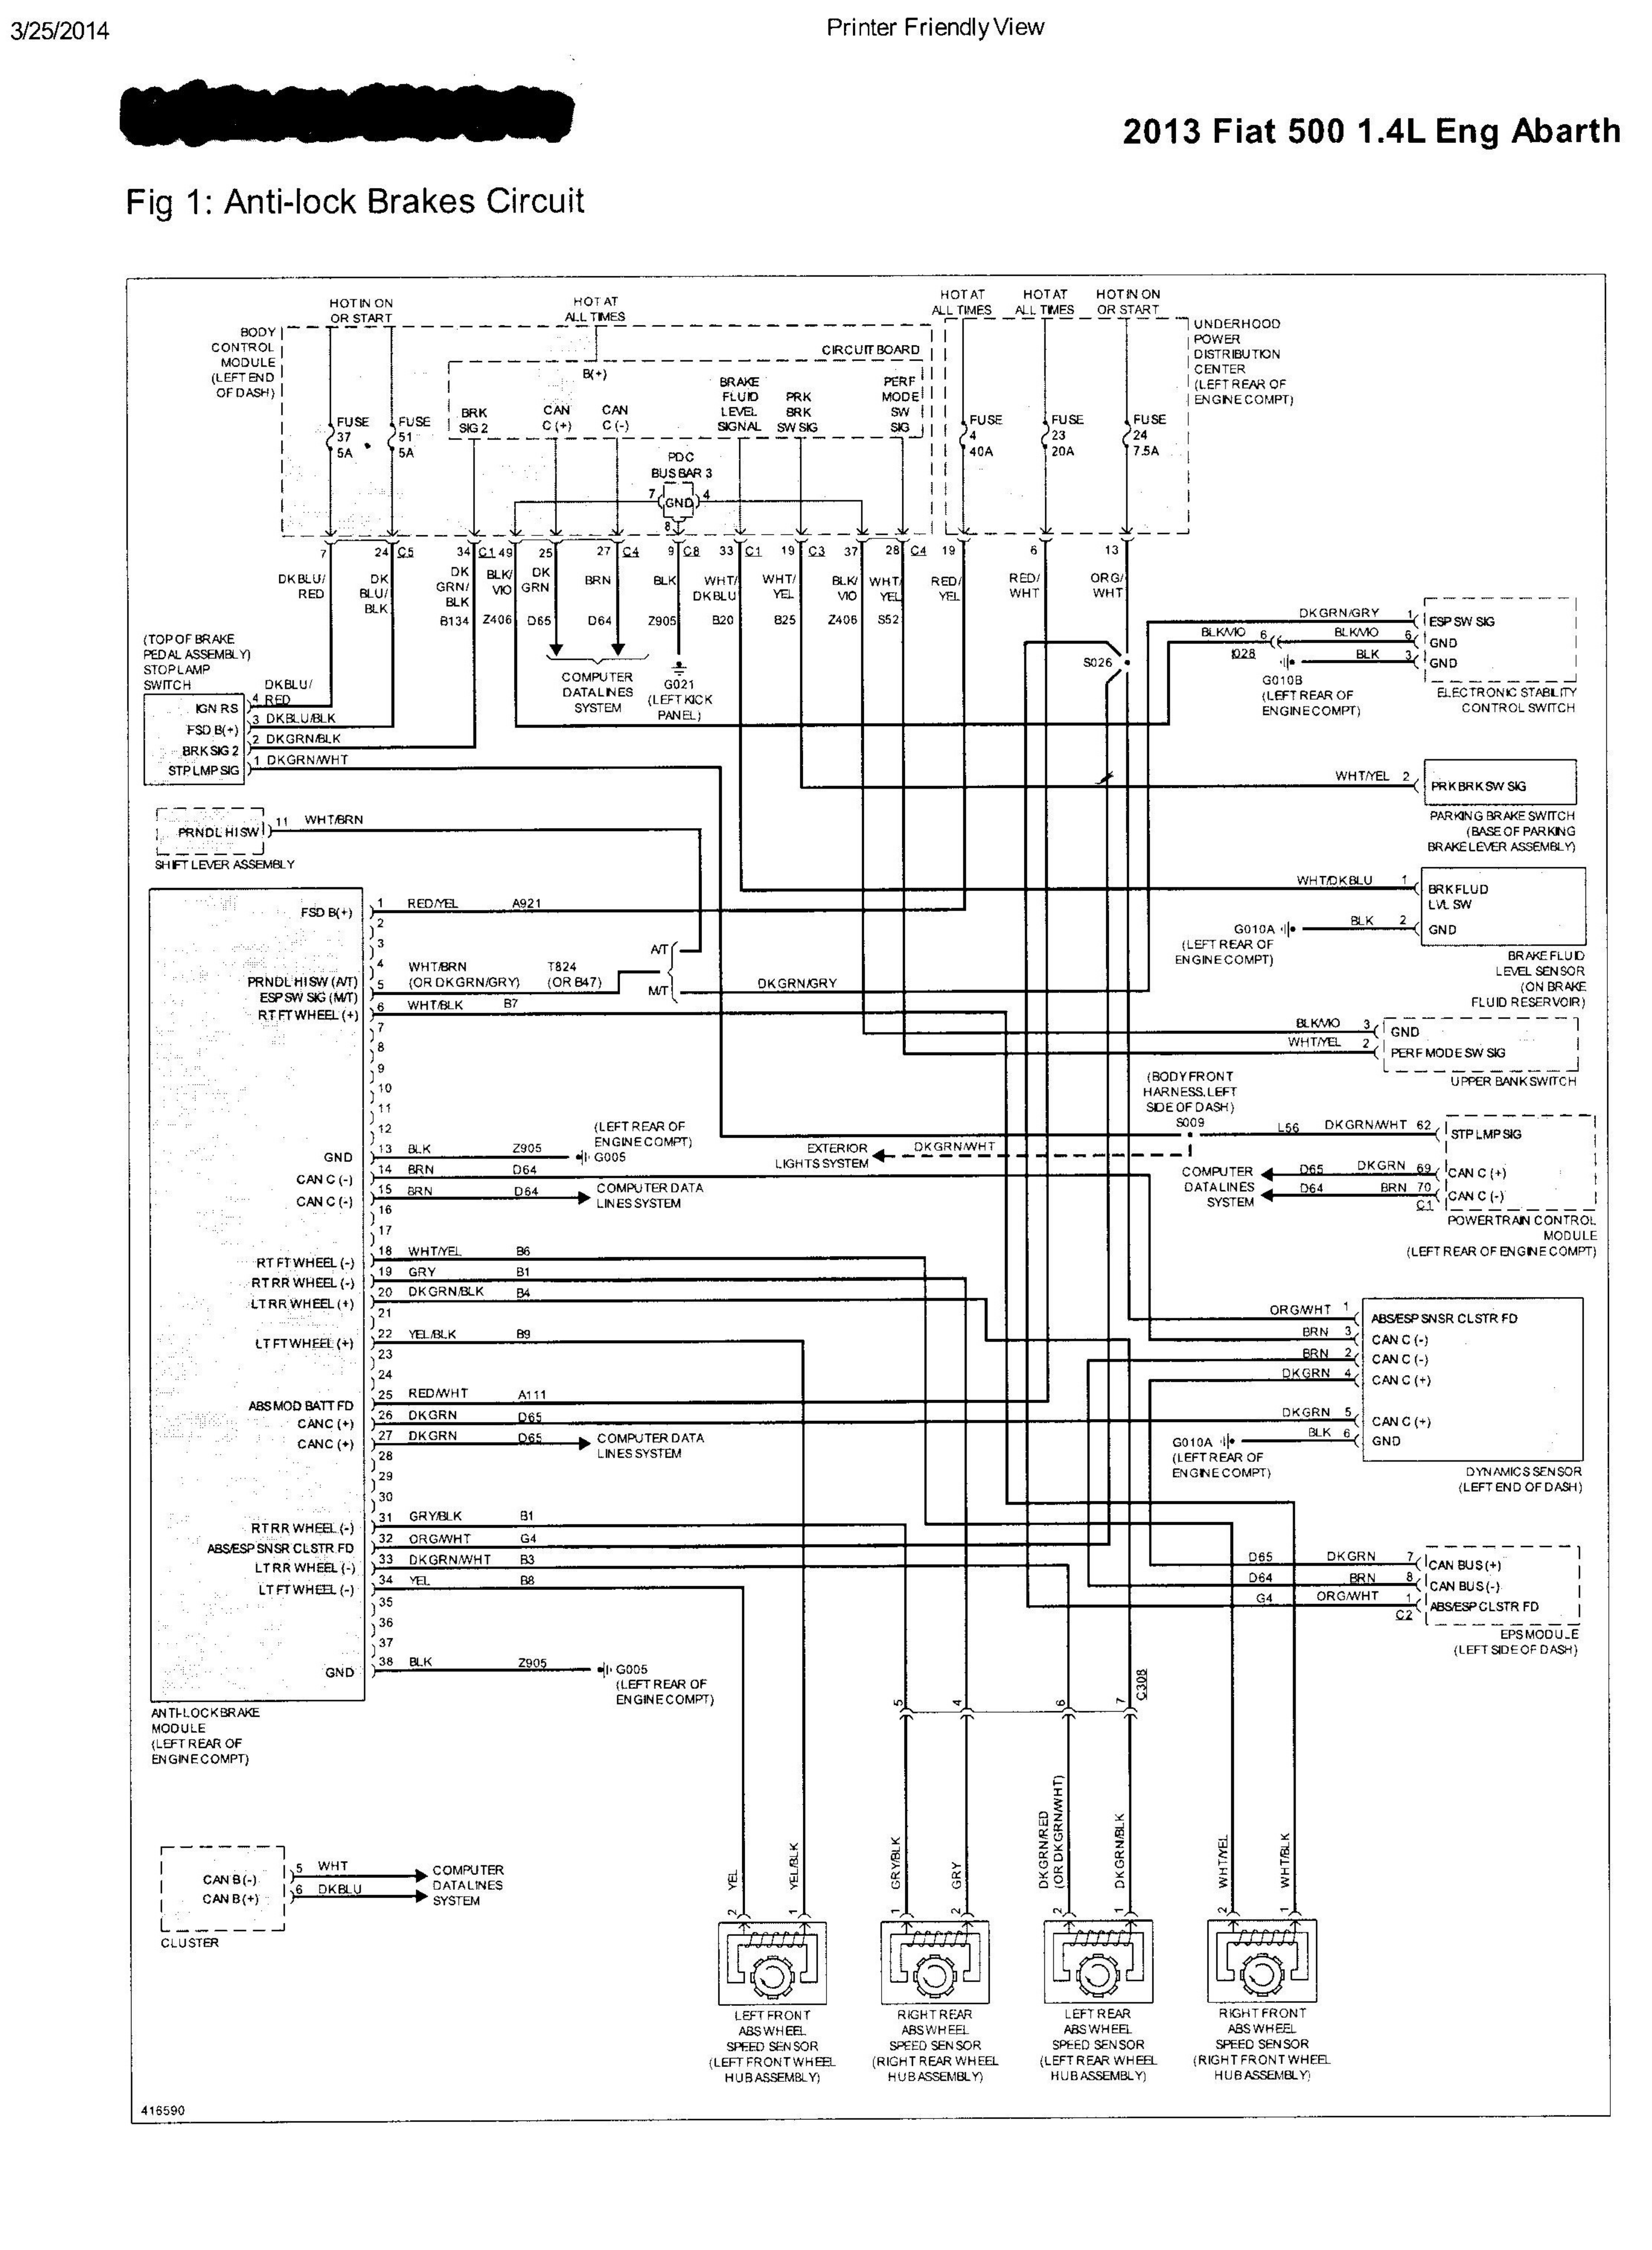 Abarth Misc Doents Wiring Diagrams Wiring Diagram For Free